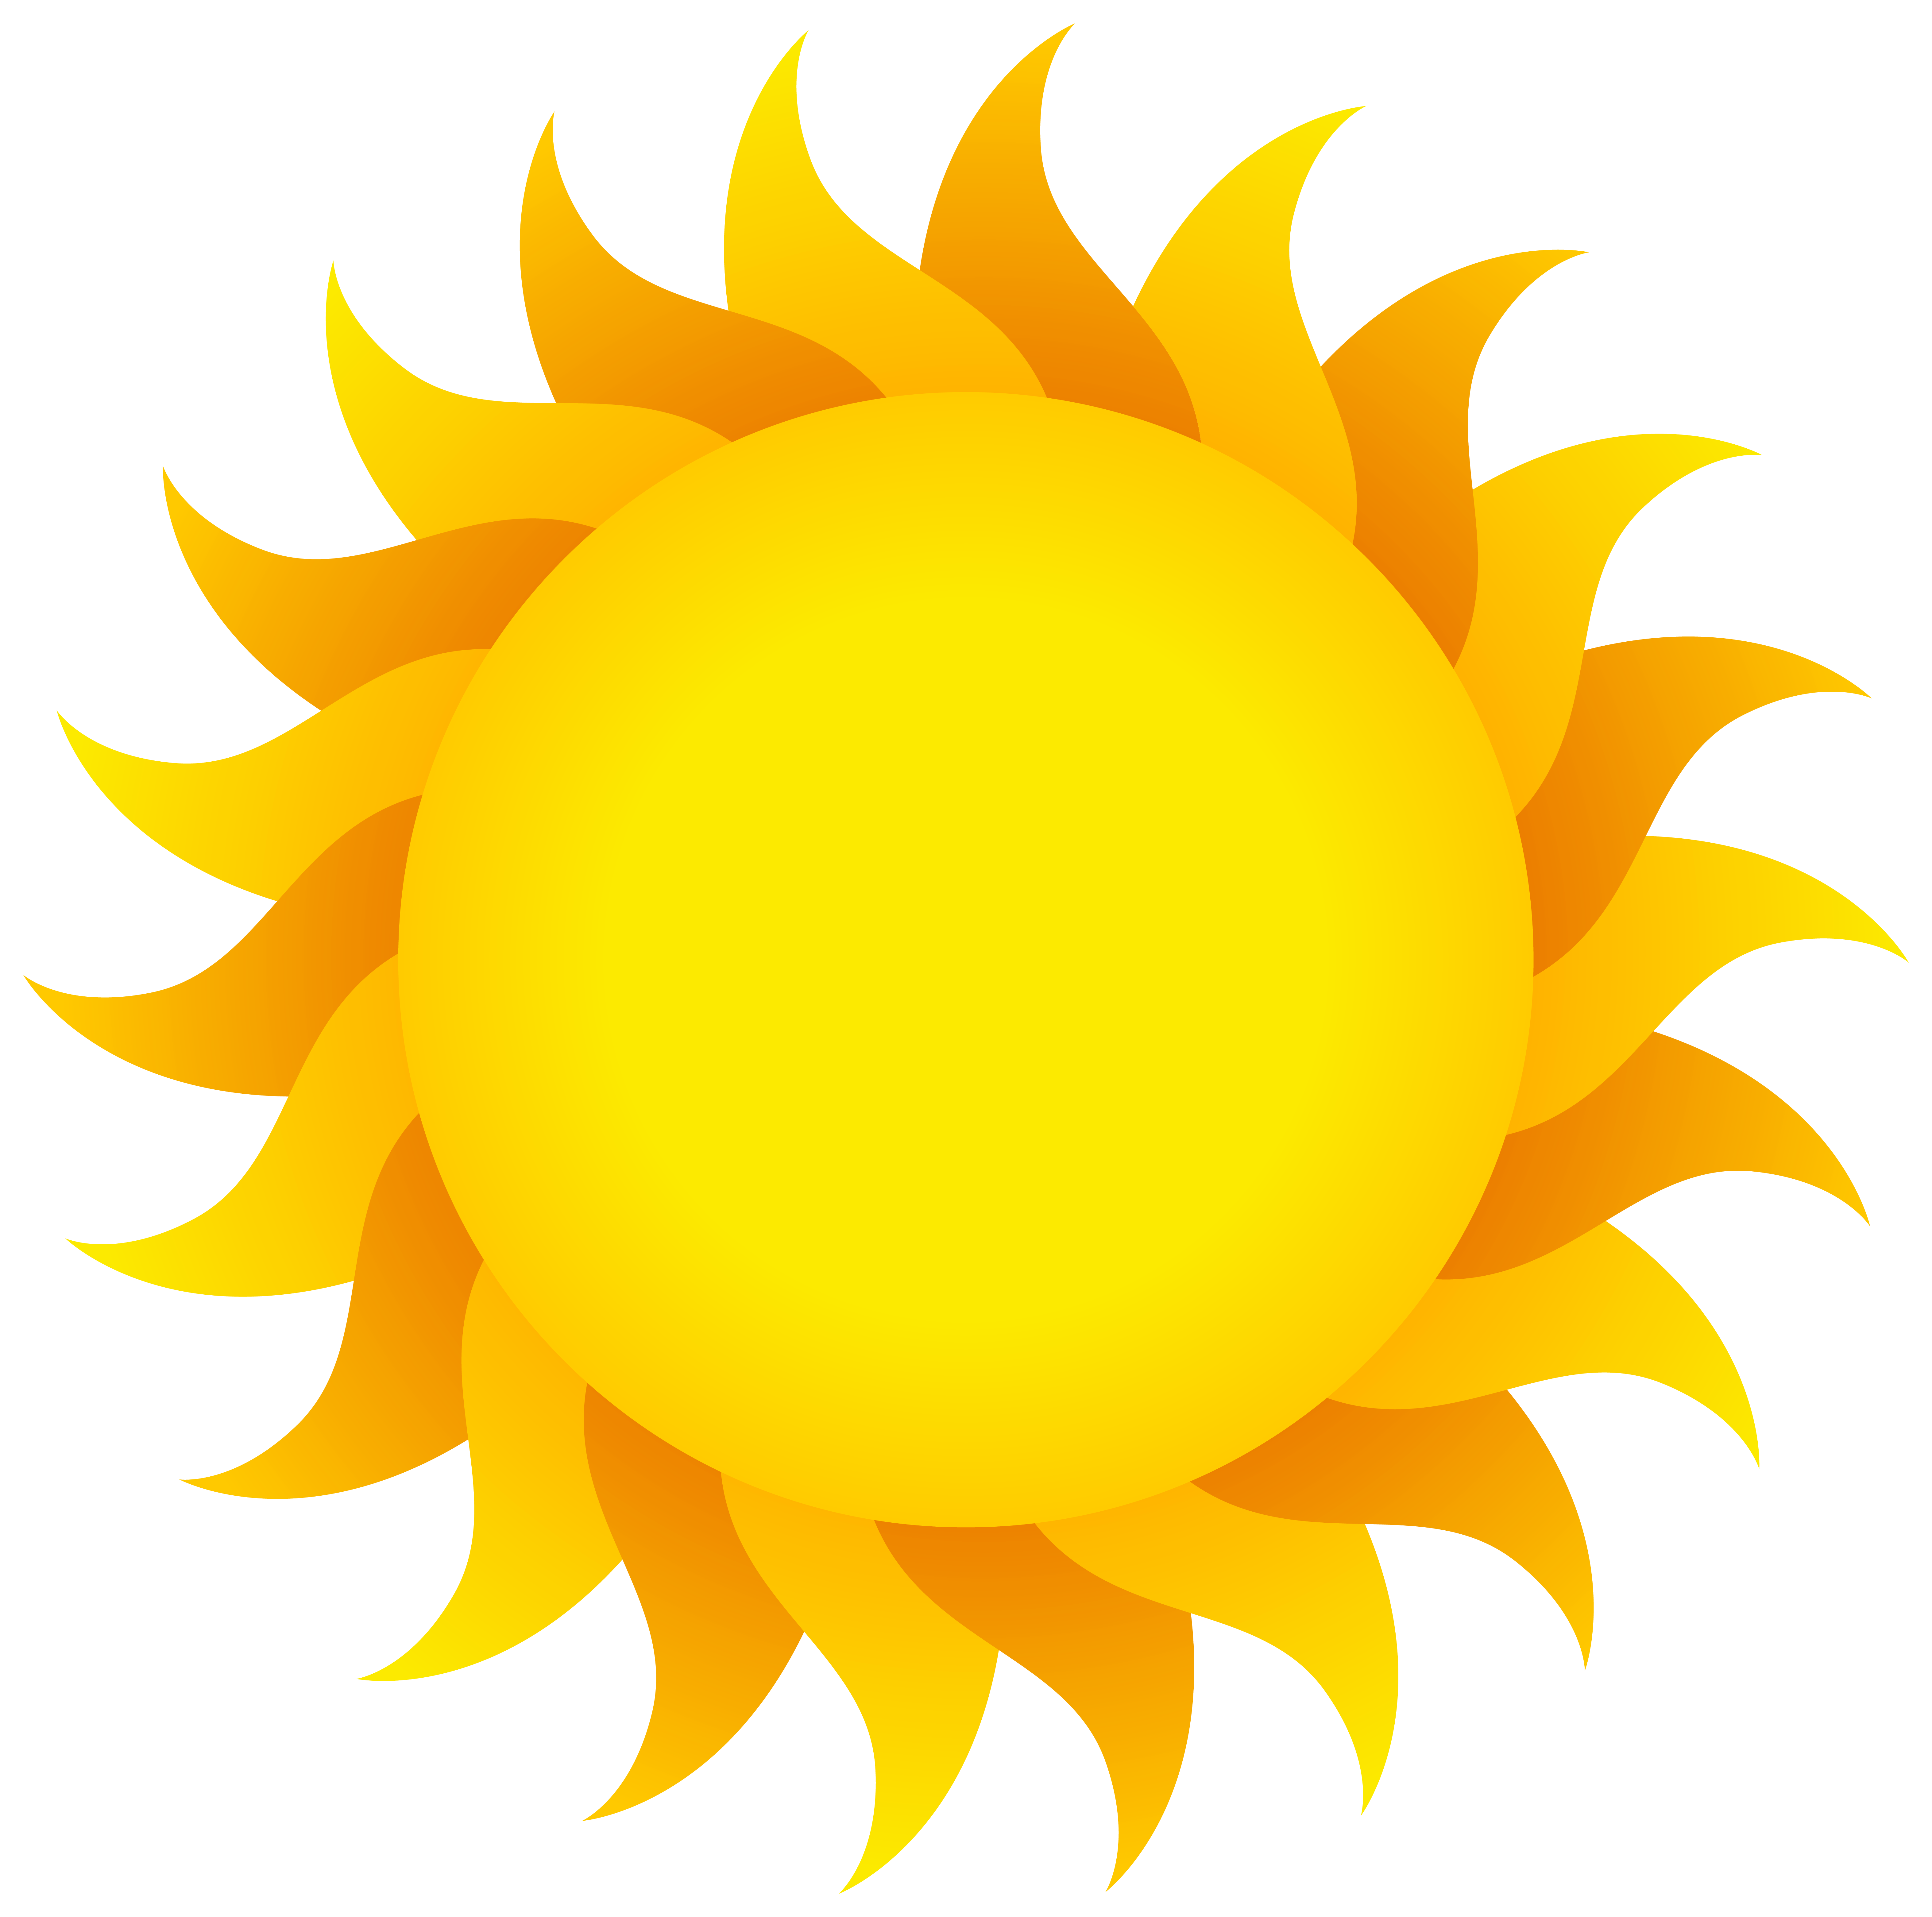 6296x6247 Sun Png Clear Background Transparent Sun Clear Background.png